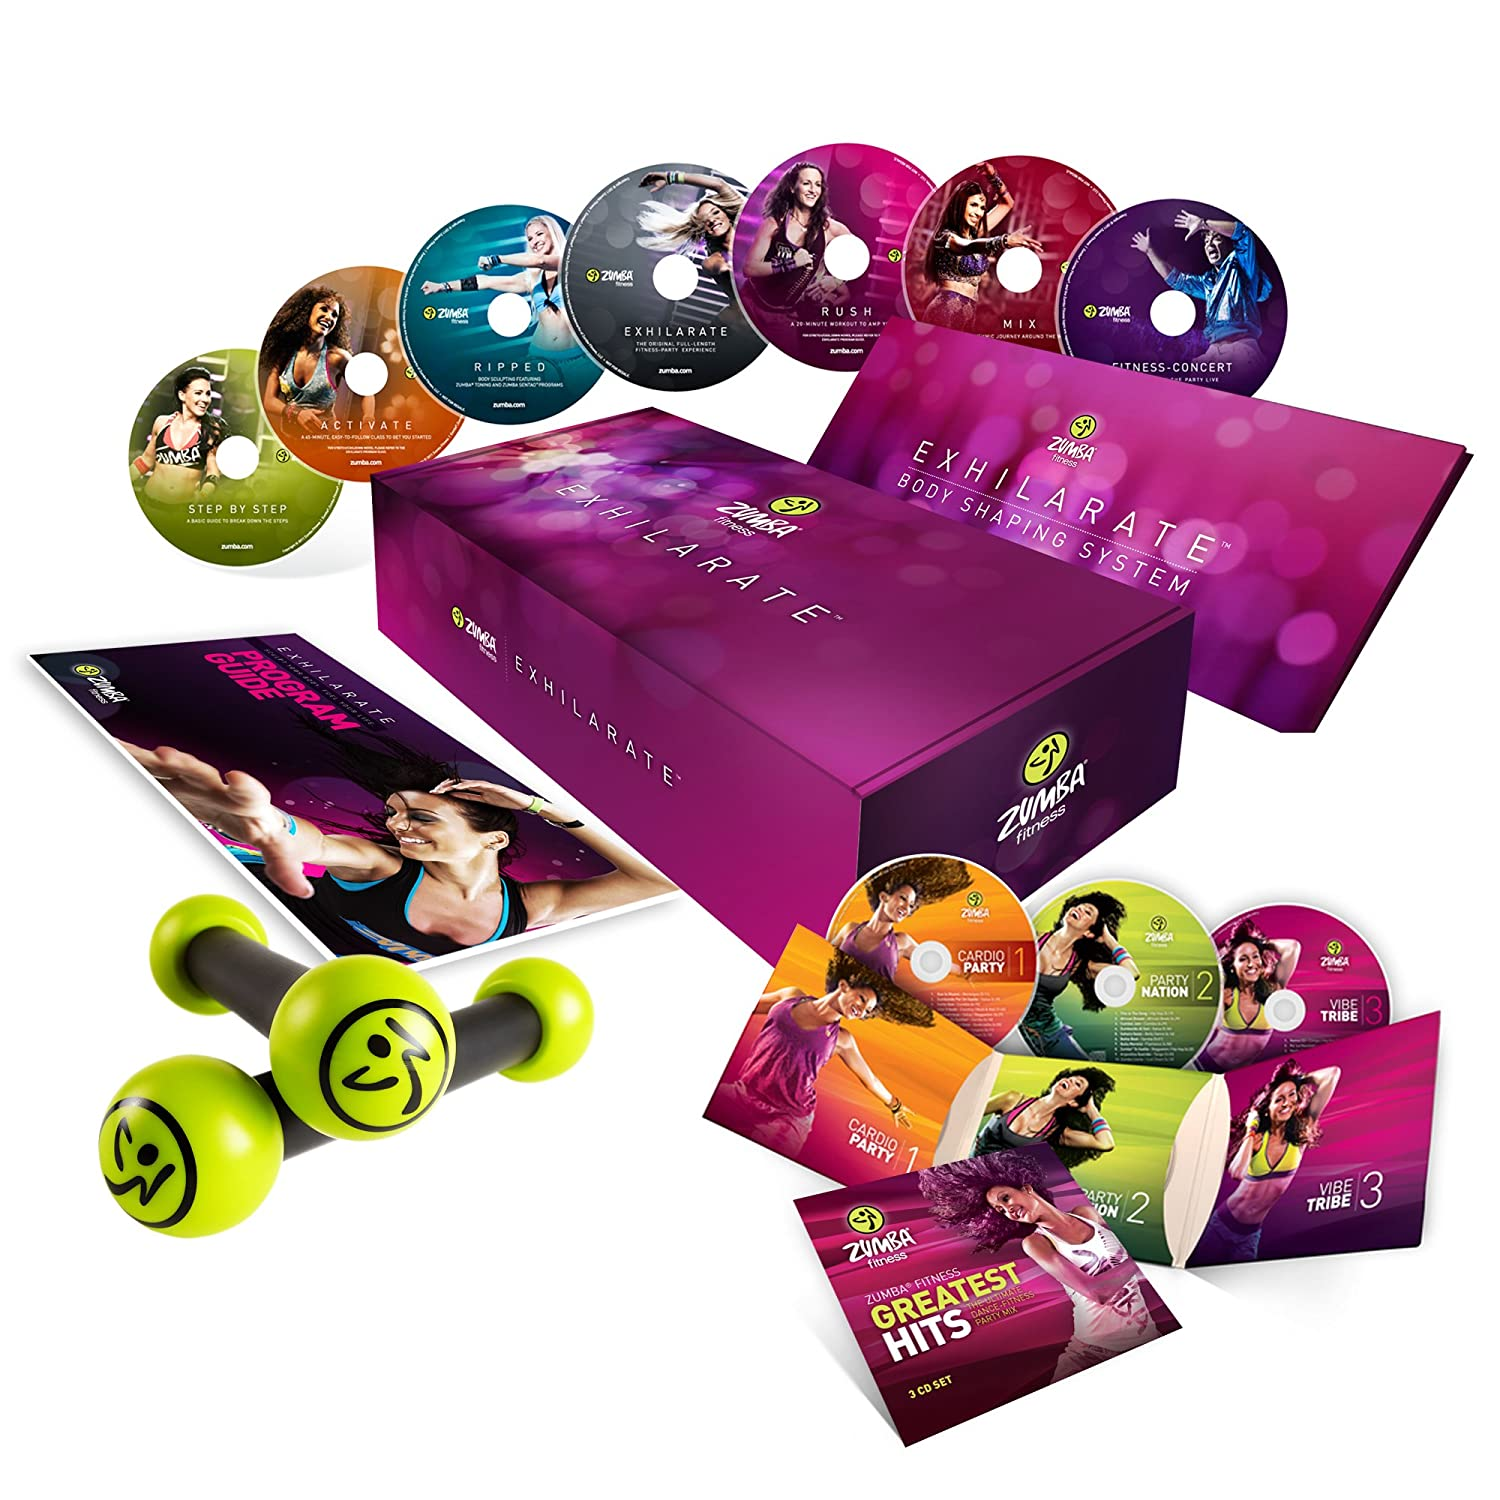 telecharger dvd zumba fitness gratuit. Black Bedroom Furniture Sets. Home Design Ideas